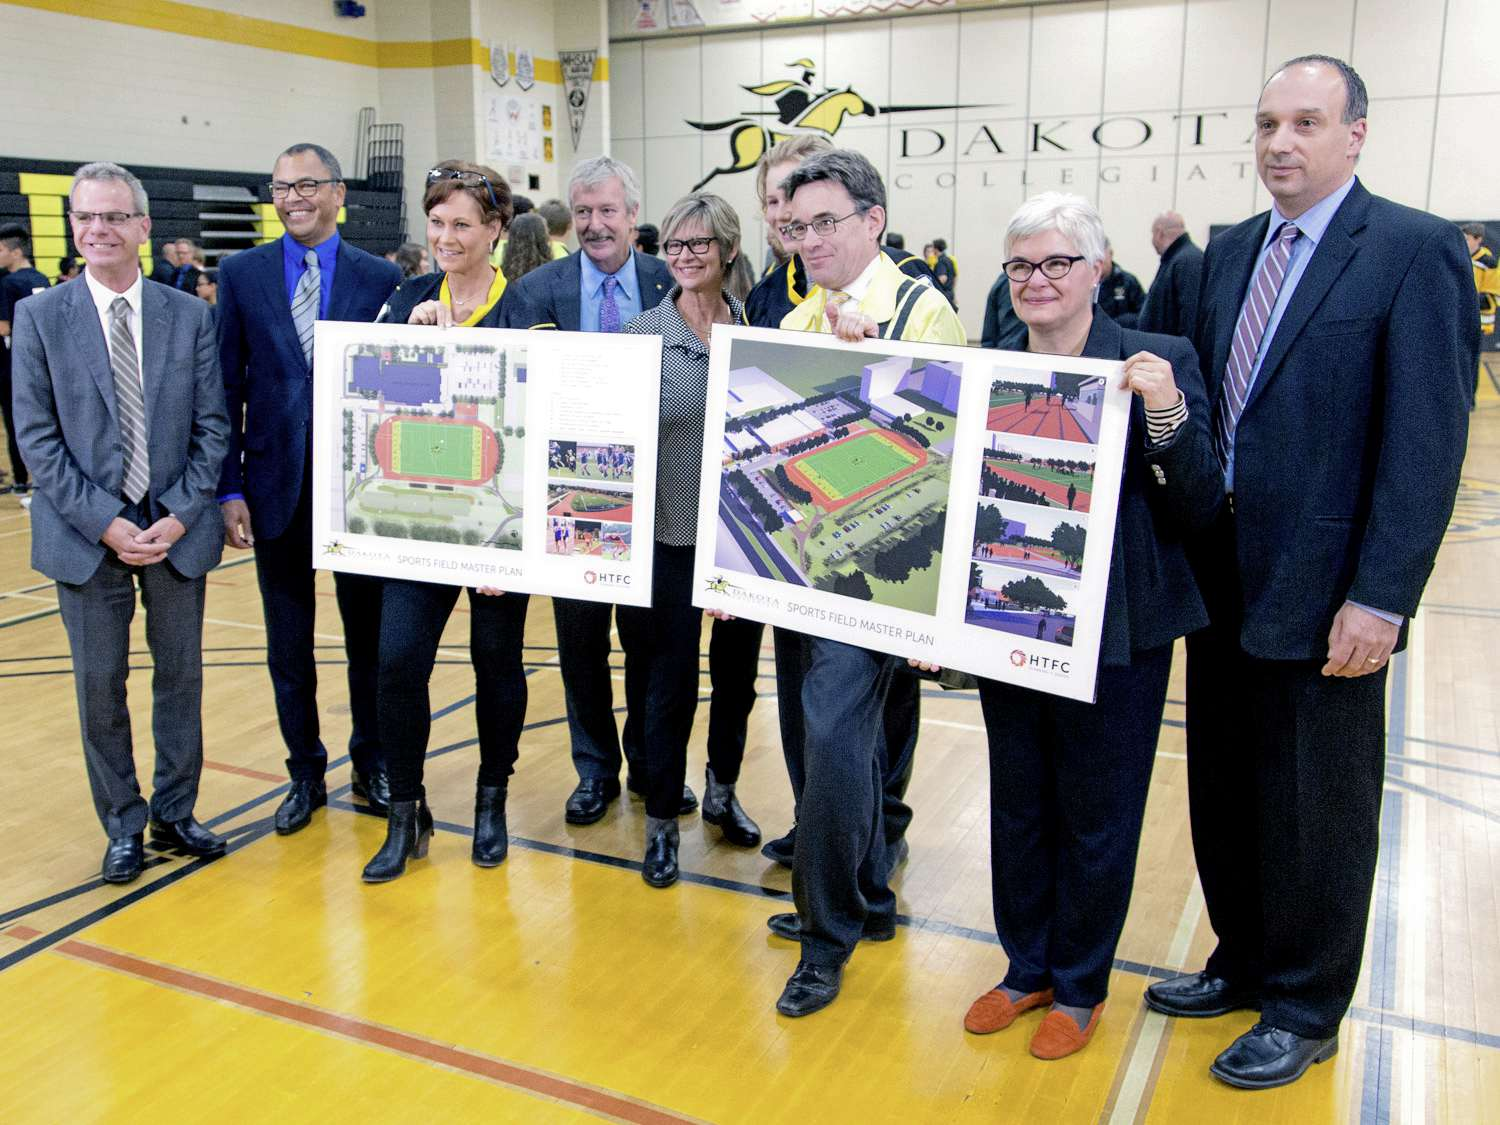 From left: MLA for Fort Garry-Riverview James Allum; Louis Riel School Division superintendent Duane Brothers; MLA for Seine River Theresa Oswald; president of Dakota Alumni Association Les Wiens; MLA for St. Vital Nancy Allan; Grade 10 student Reid Vankoughnett; Coun. Brian Mayes (St. Vital); MLA for Riel Christine Melnick; and head of the school's math department Dean Favoni, who also has two children at the school.